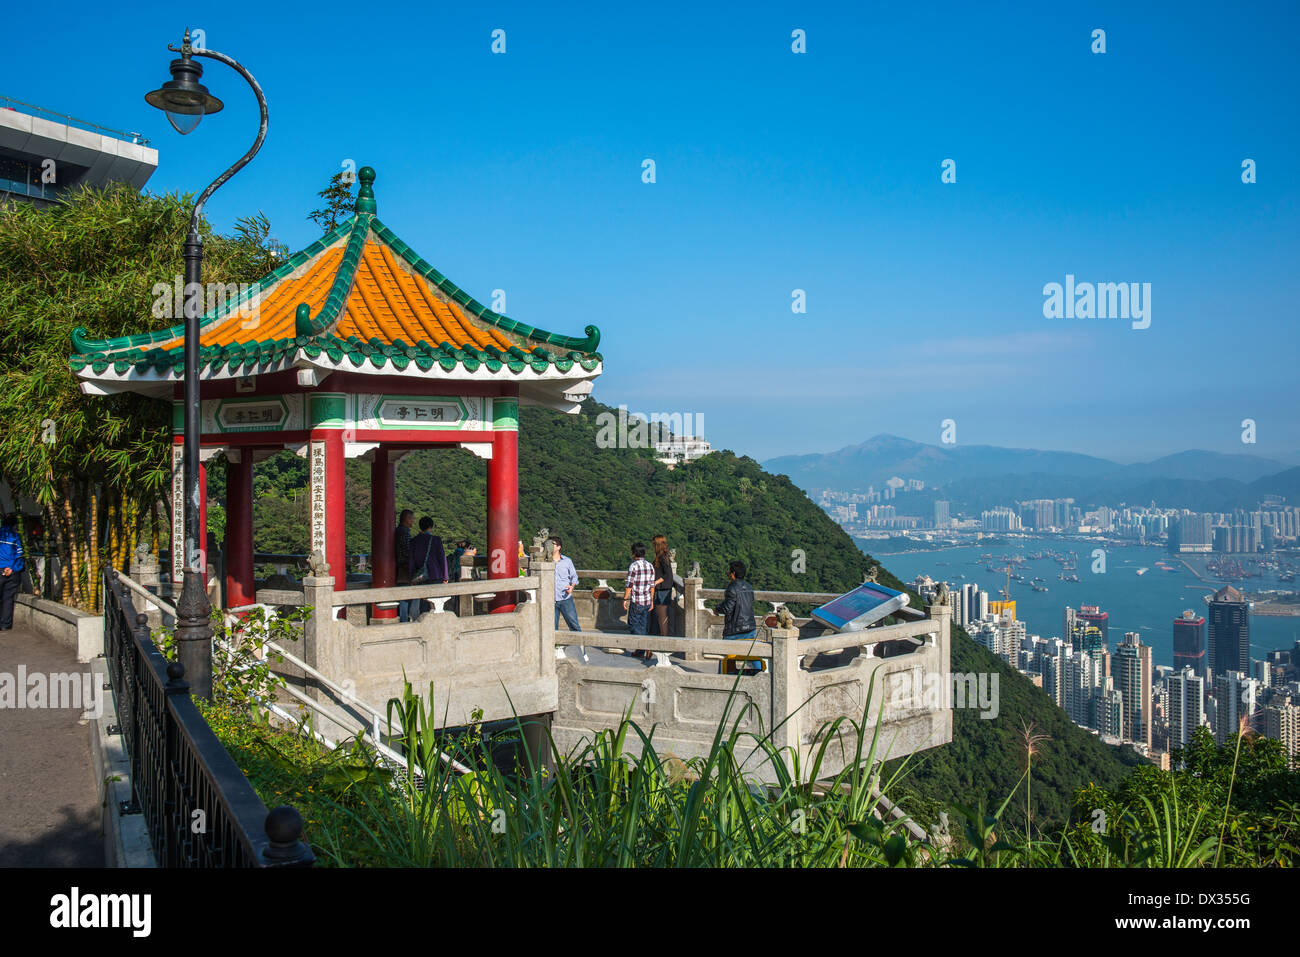 Viewpoint at The Peak, Hong Kong - Stock Image